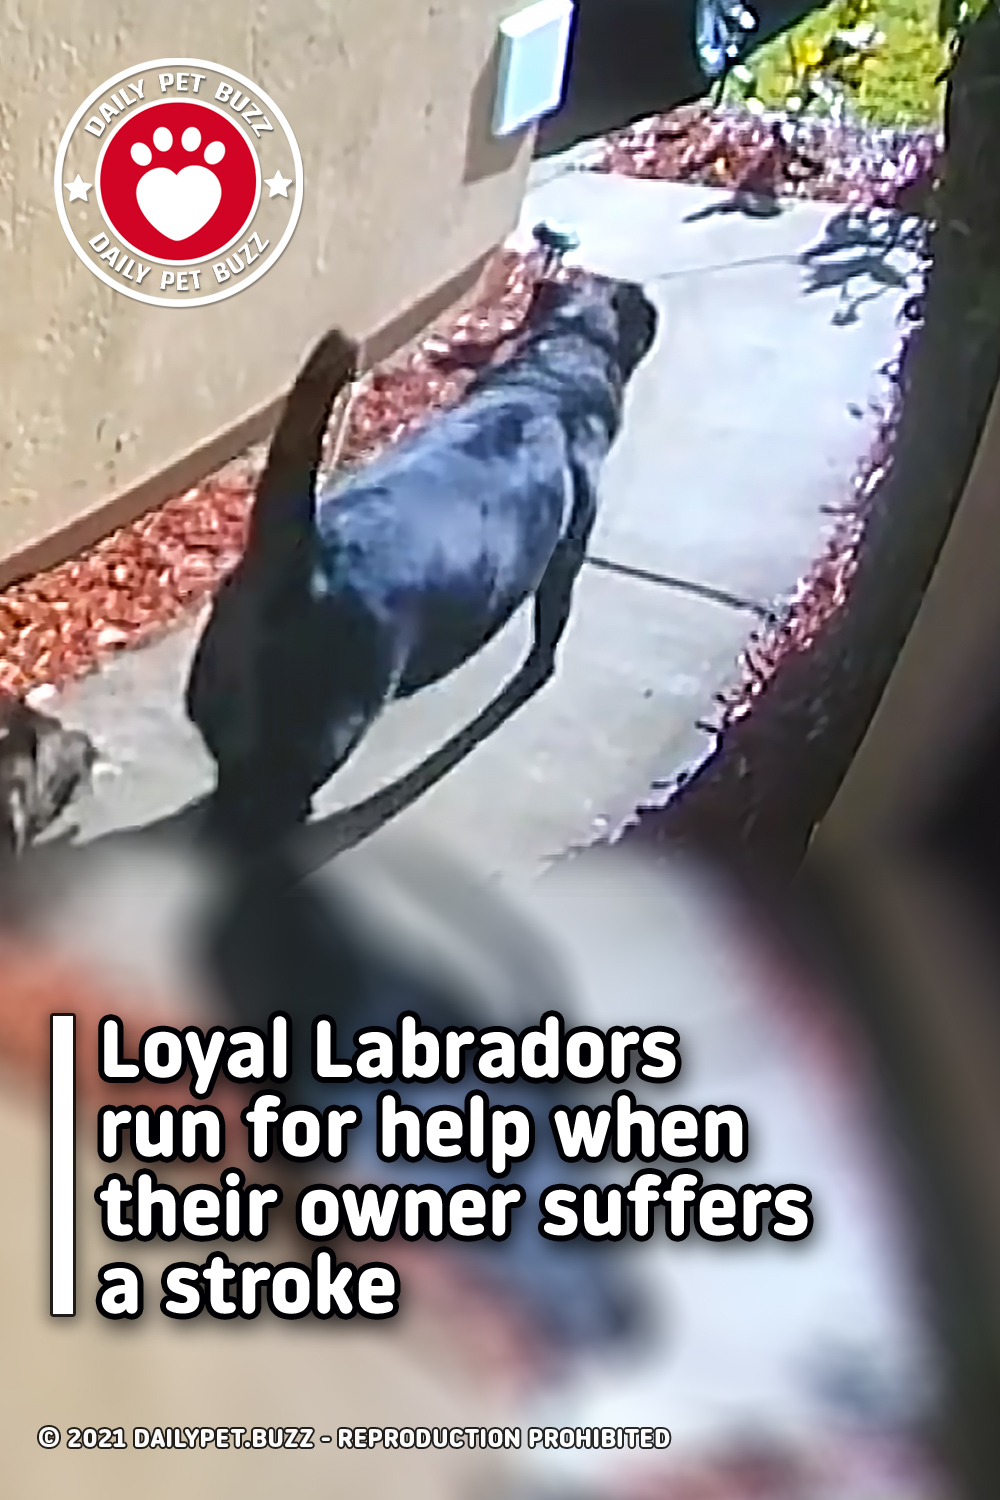 Loyal Labradors run for help when their owner suffers a stroke